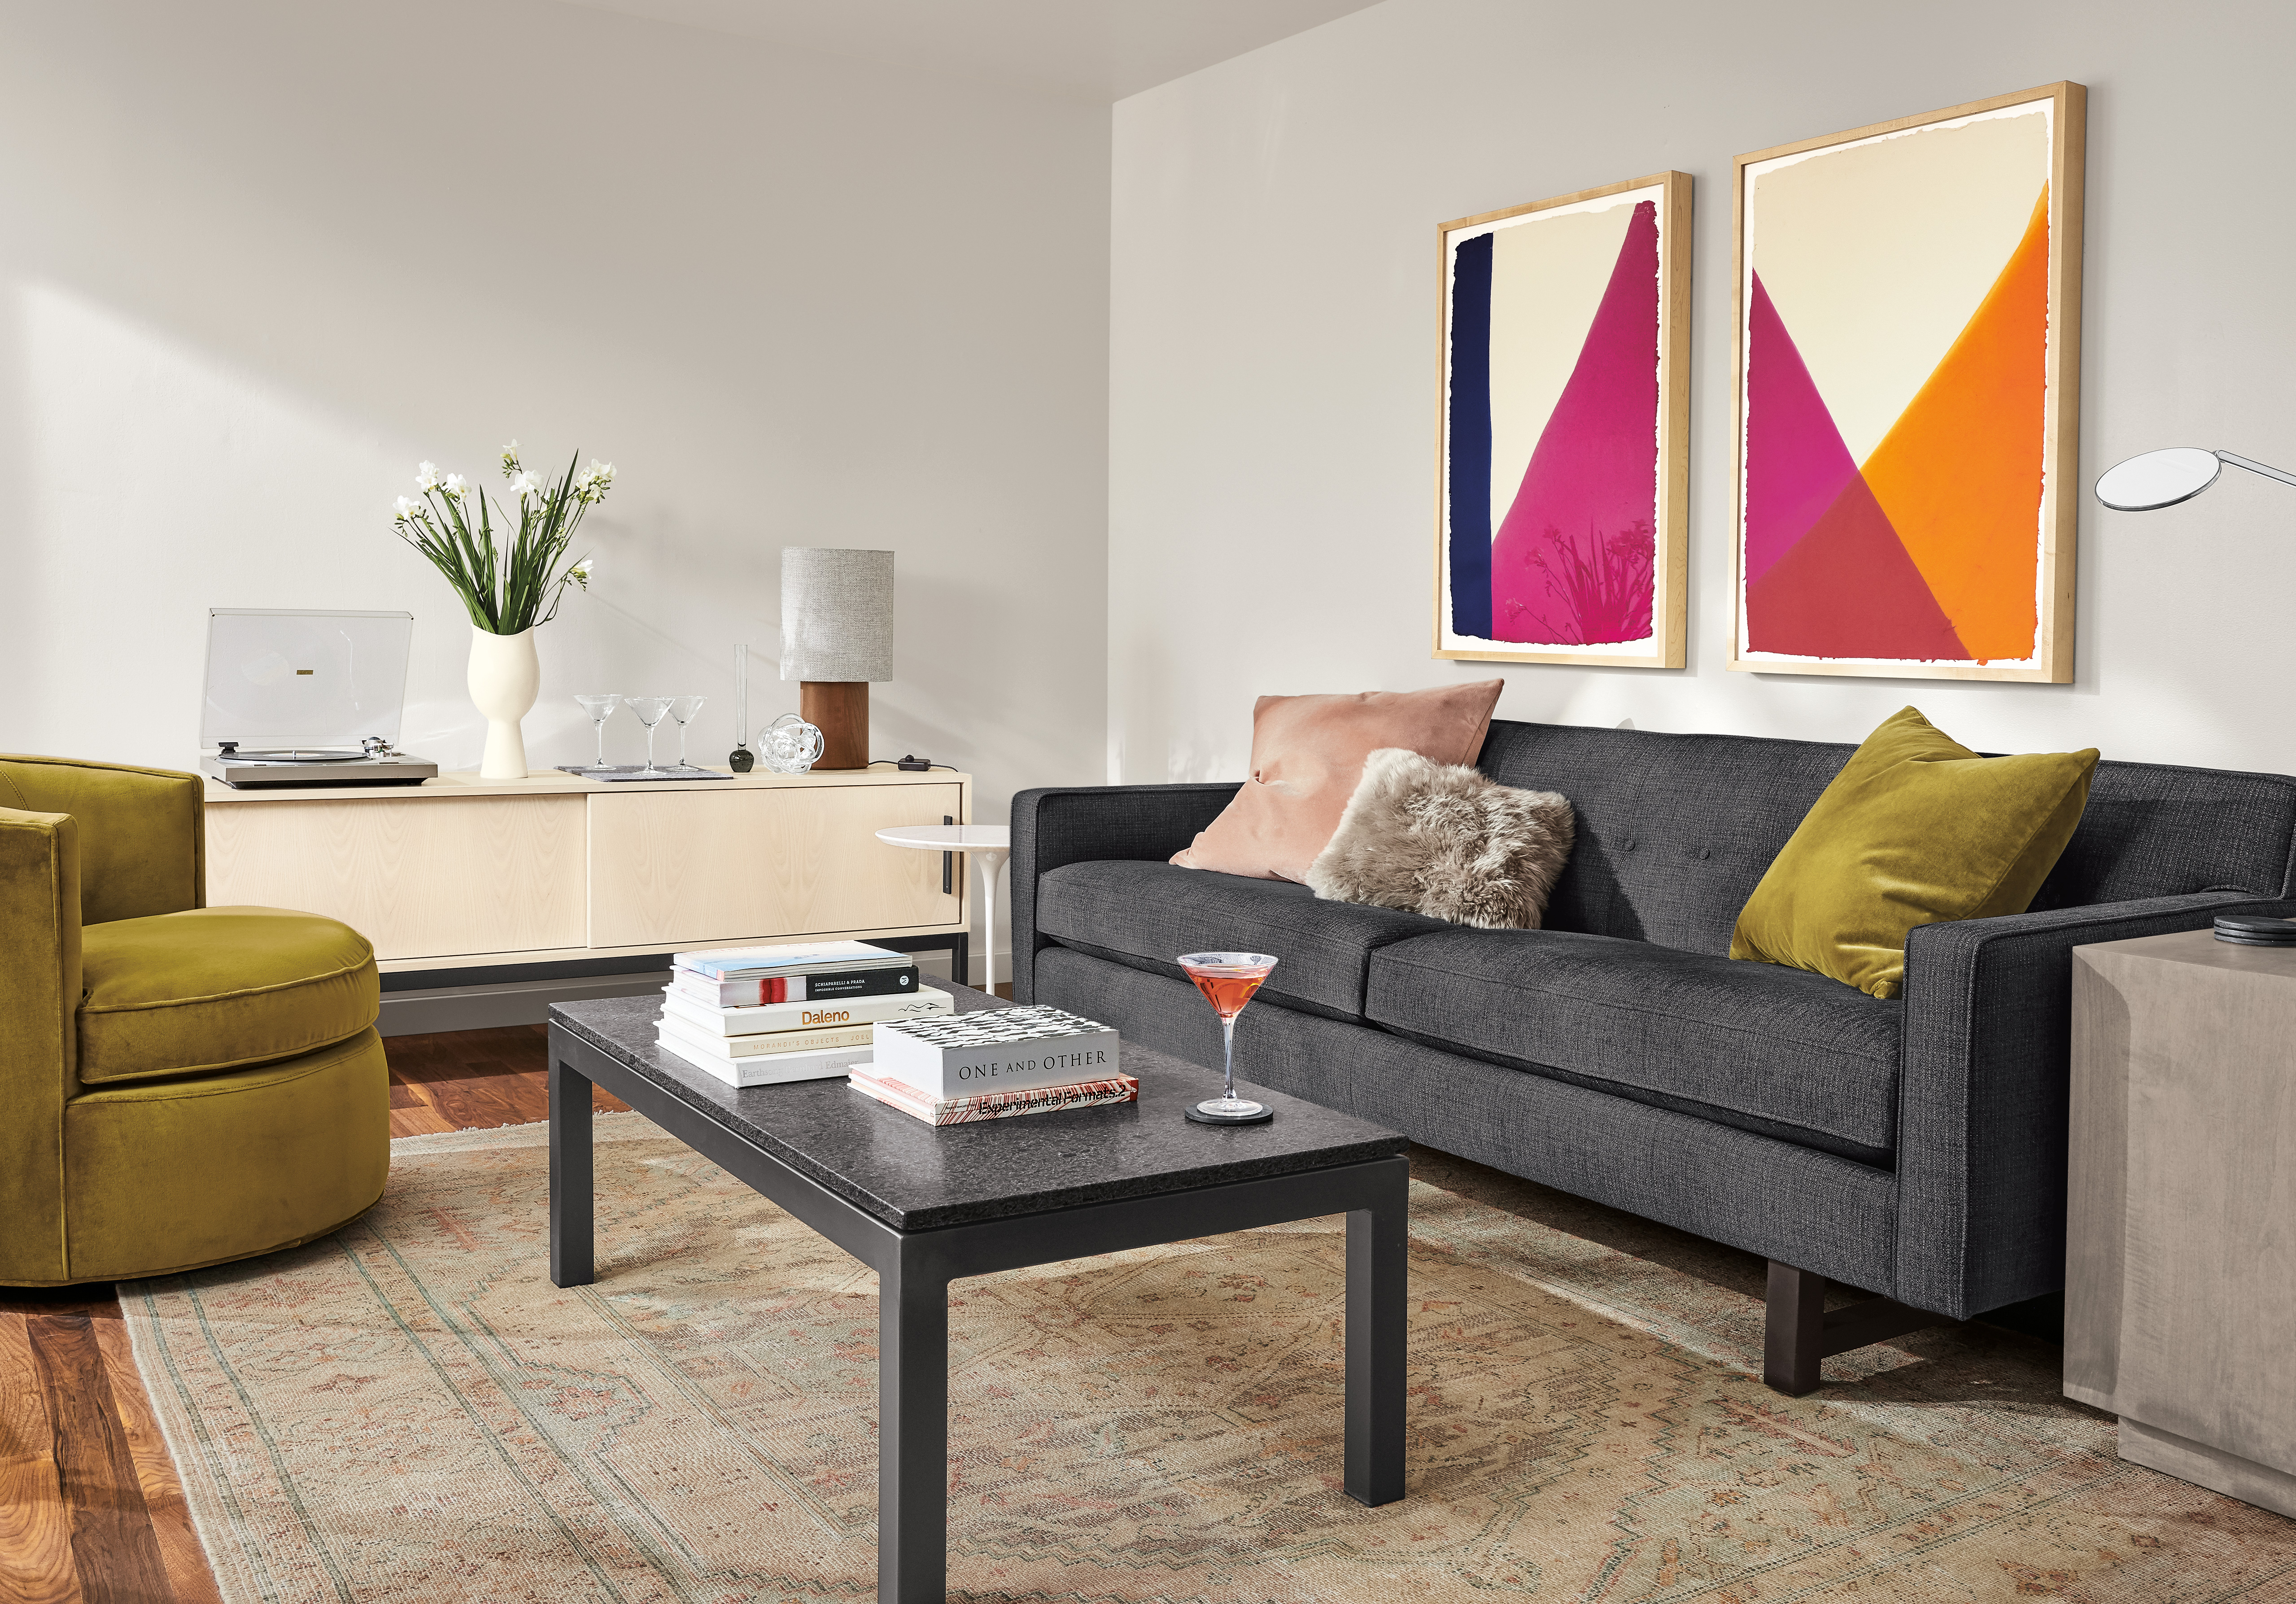 Ideas For Small Living Rooms Decorating Ideas For A Small Living Room Room Board